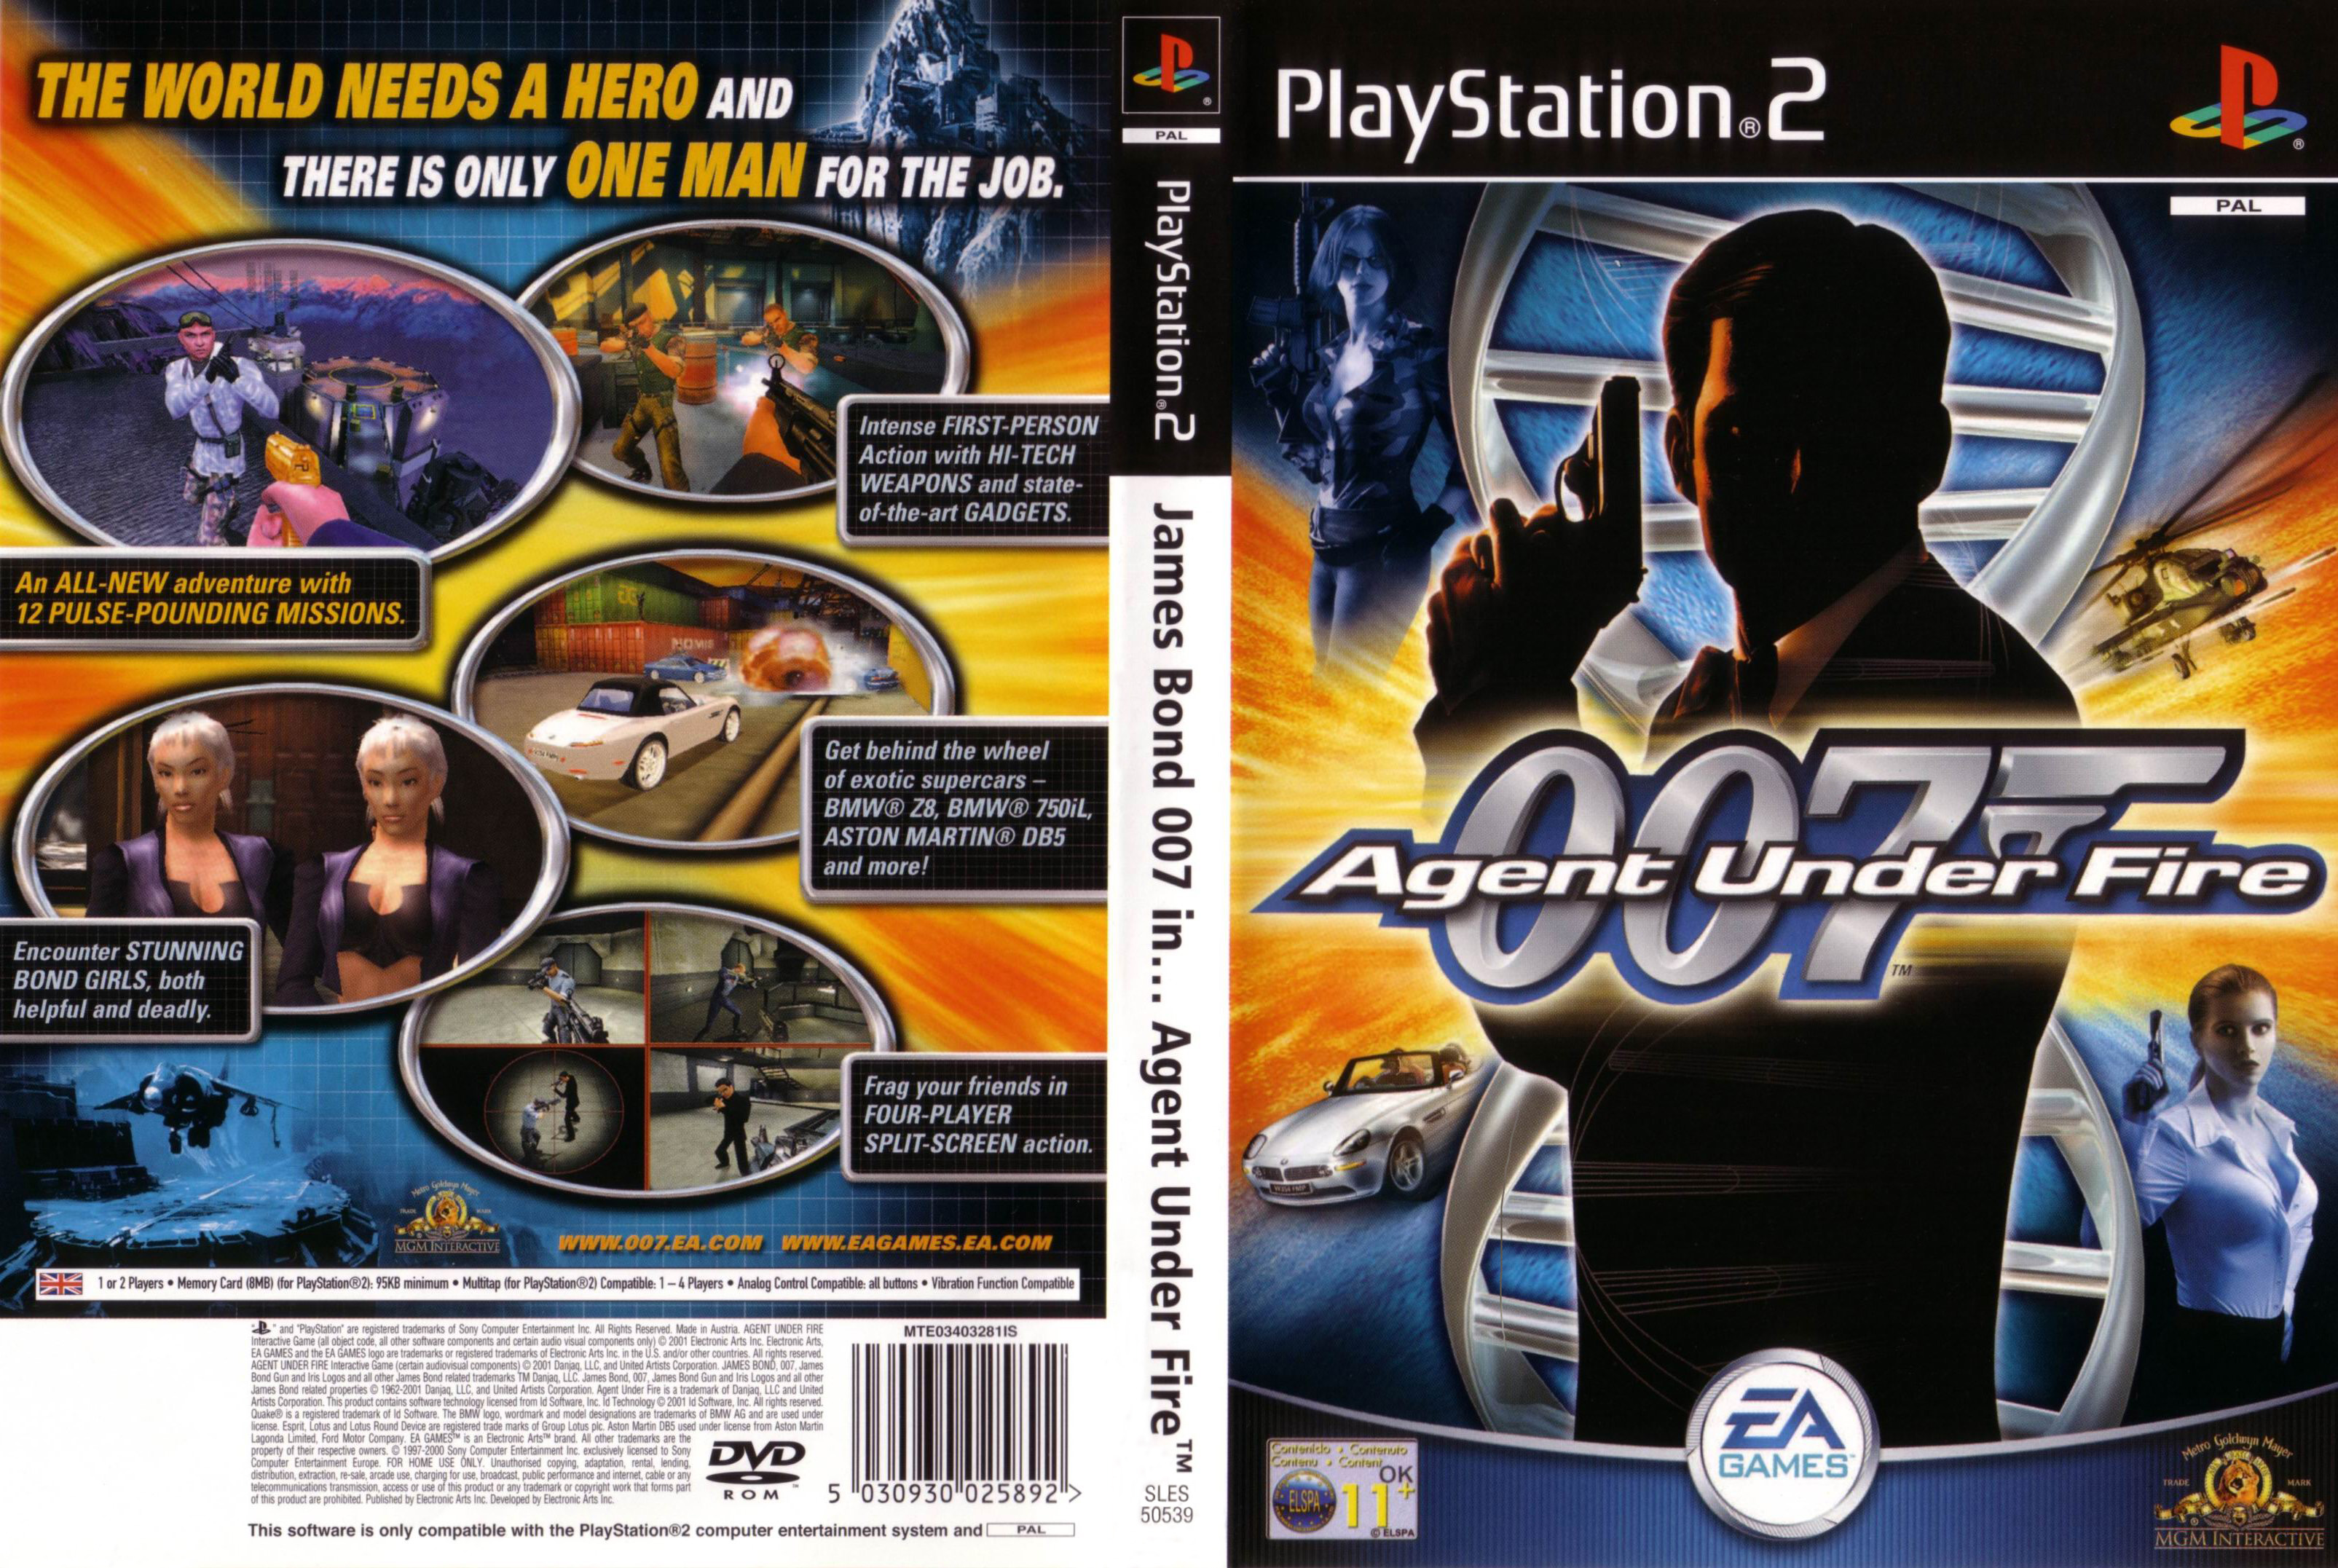 007 agent under fire (usa) rom / iso download for playstation 2.